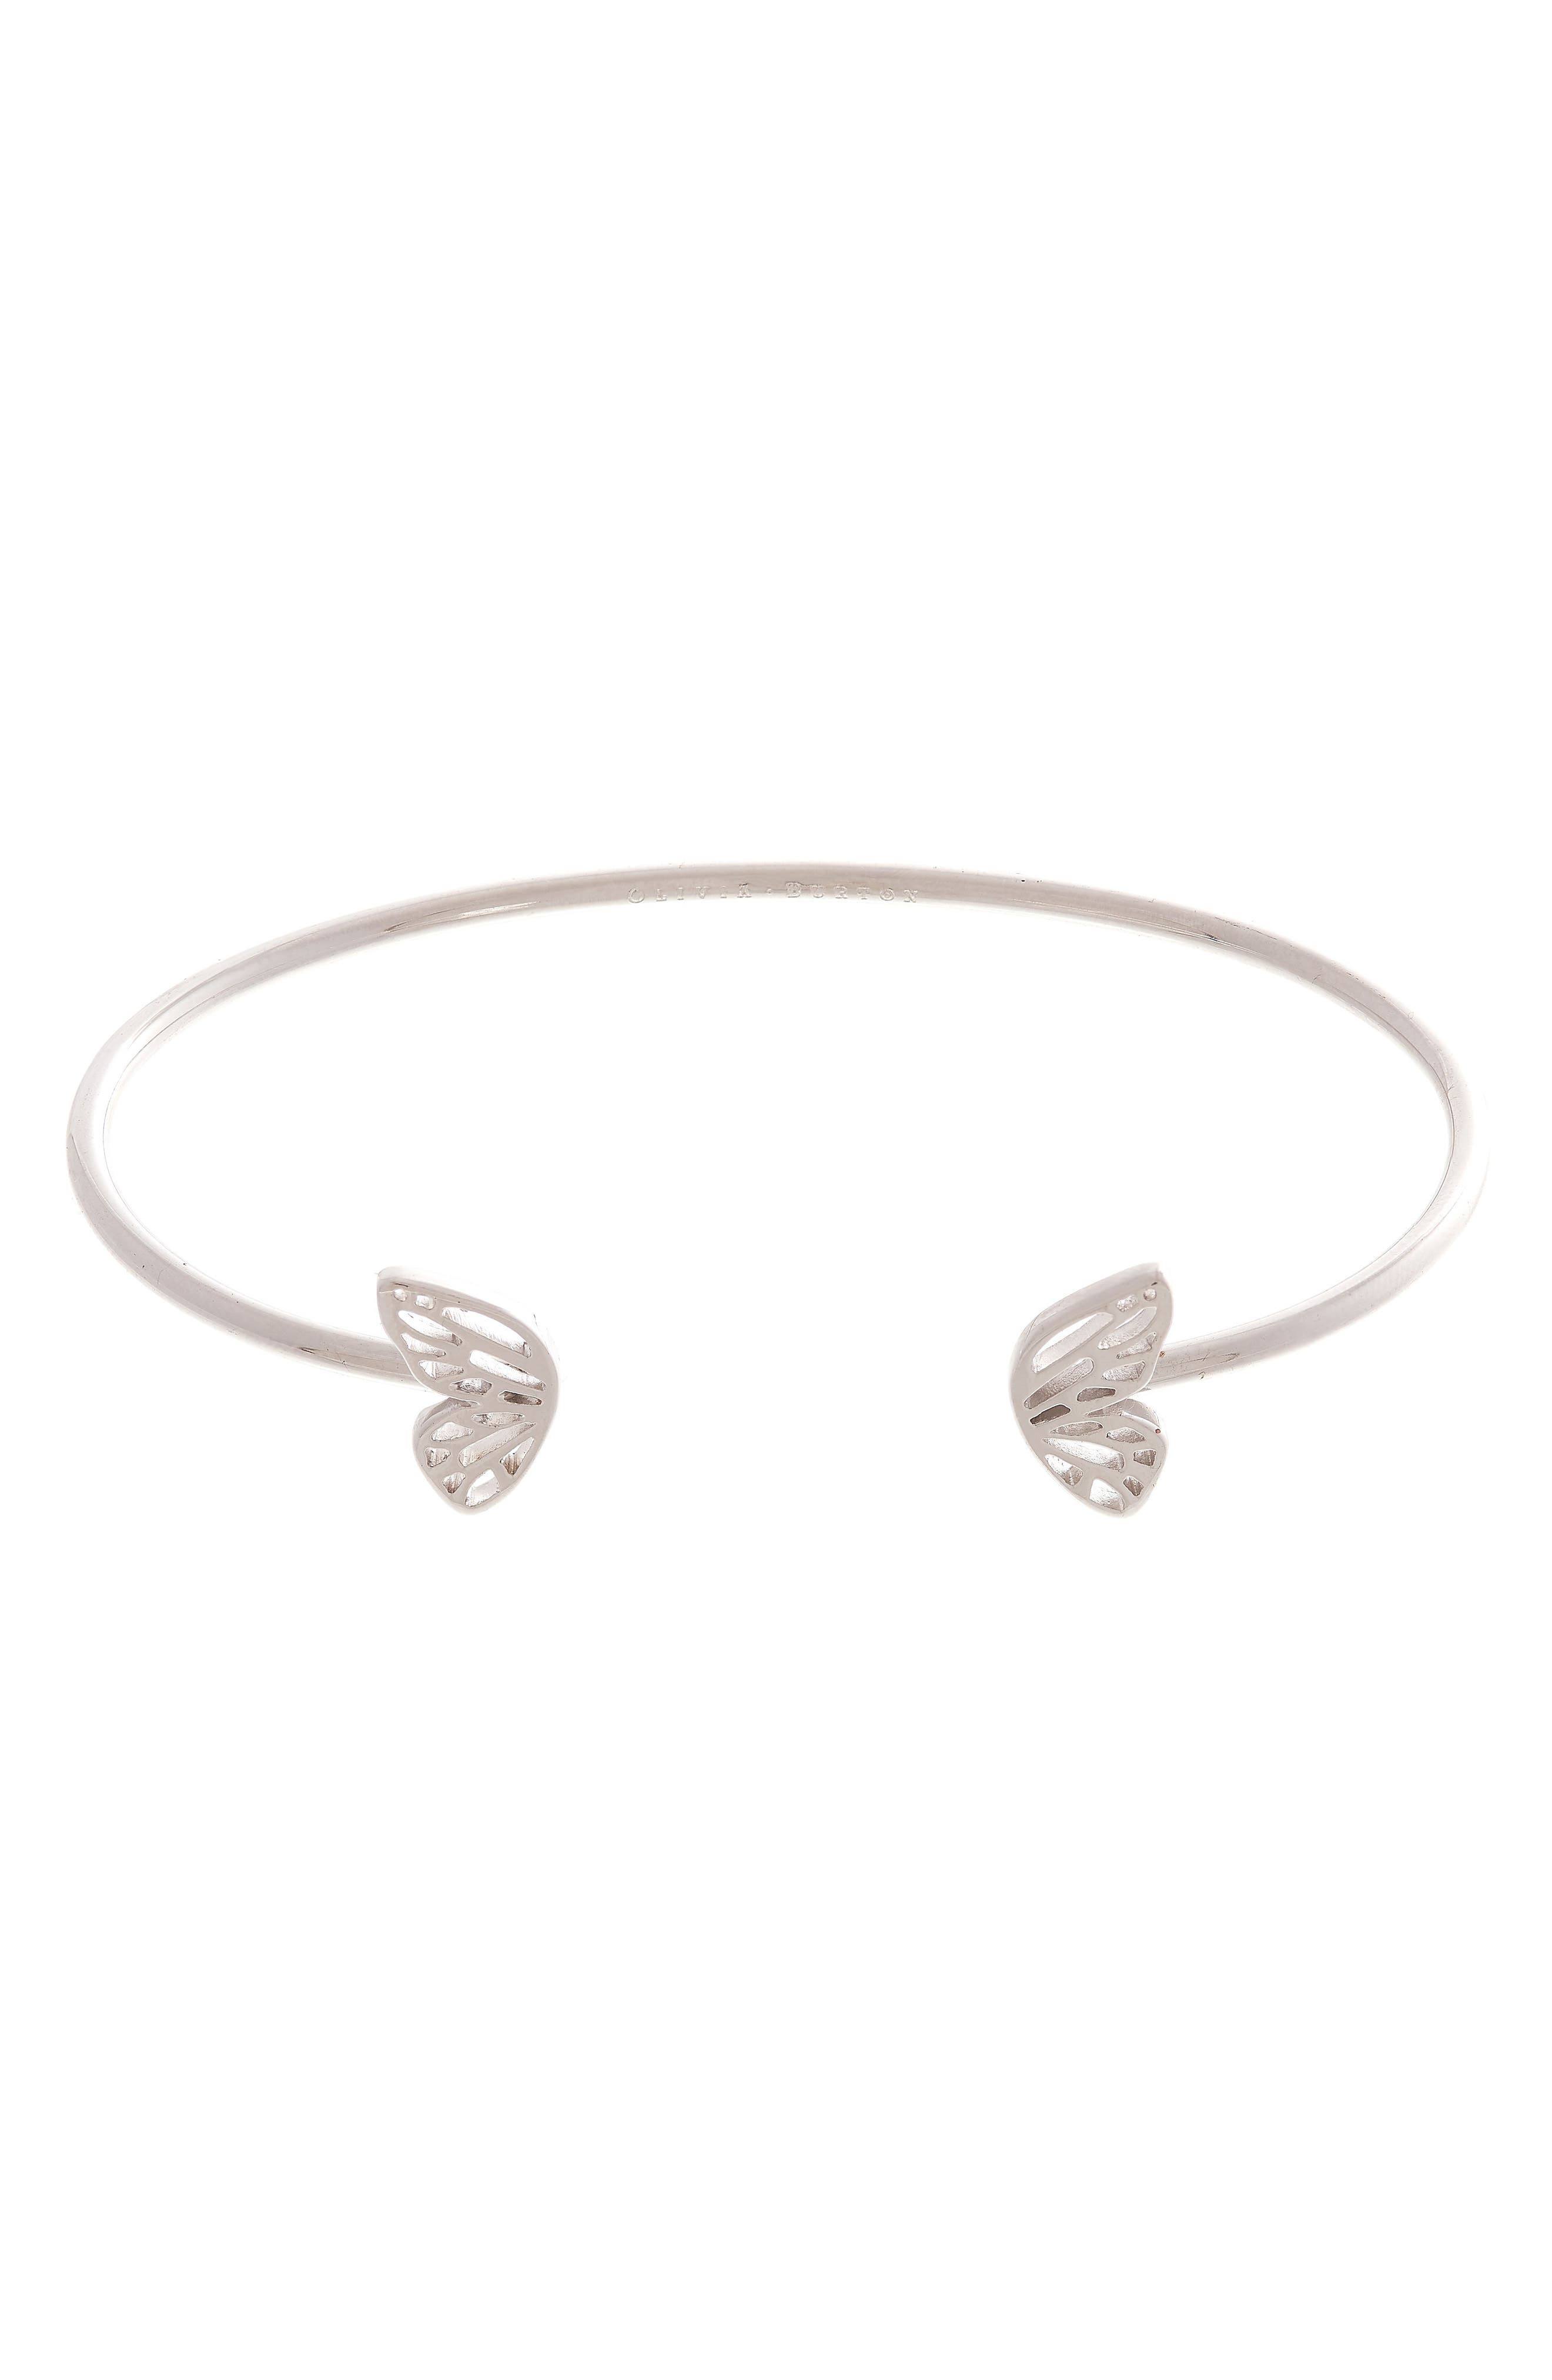 Butterfly Wing Open Bangle Bracelet,                             Main thumbnail 1, color,                             SILVER